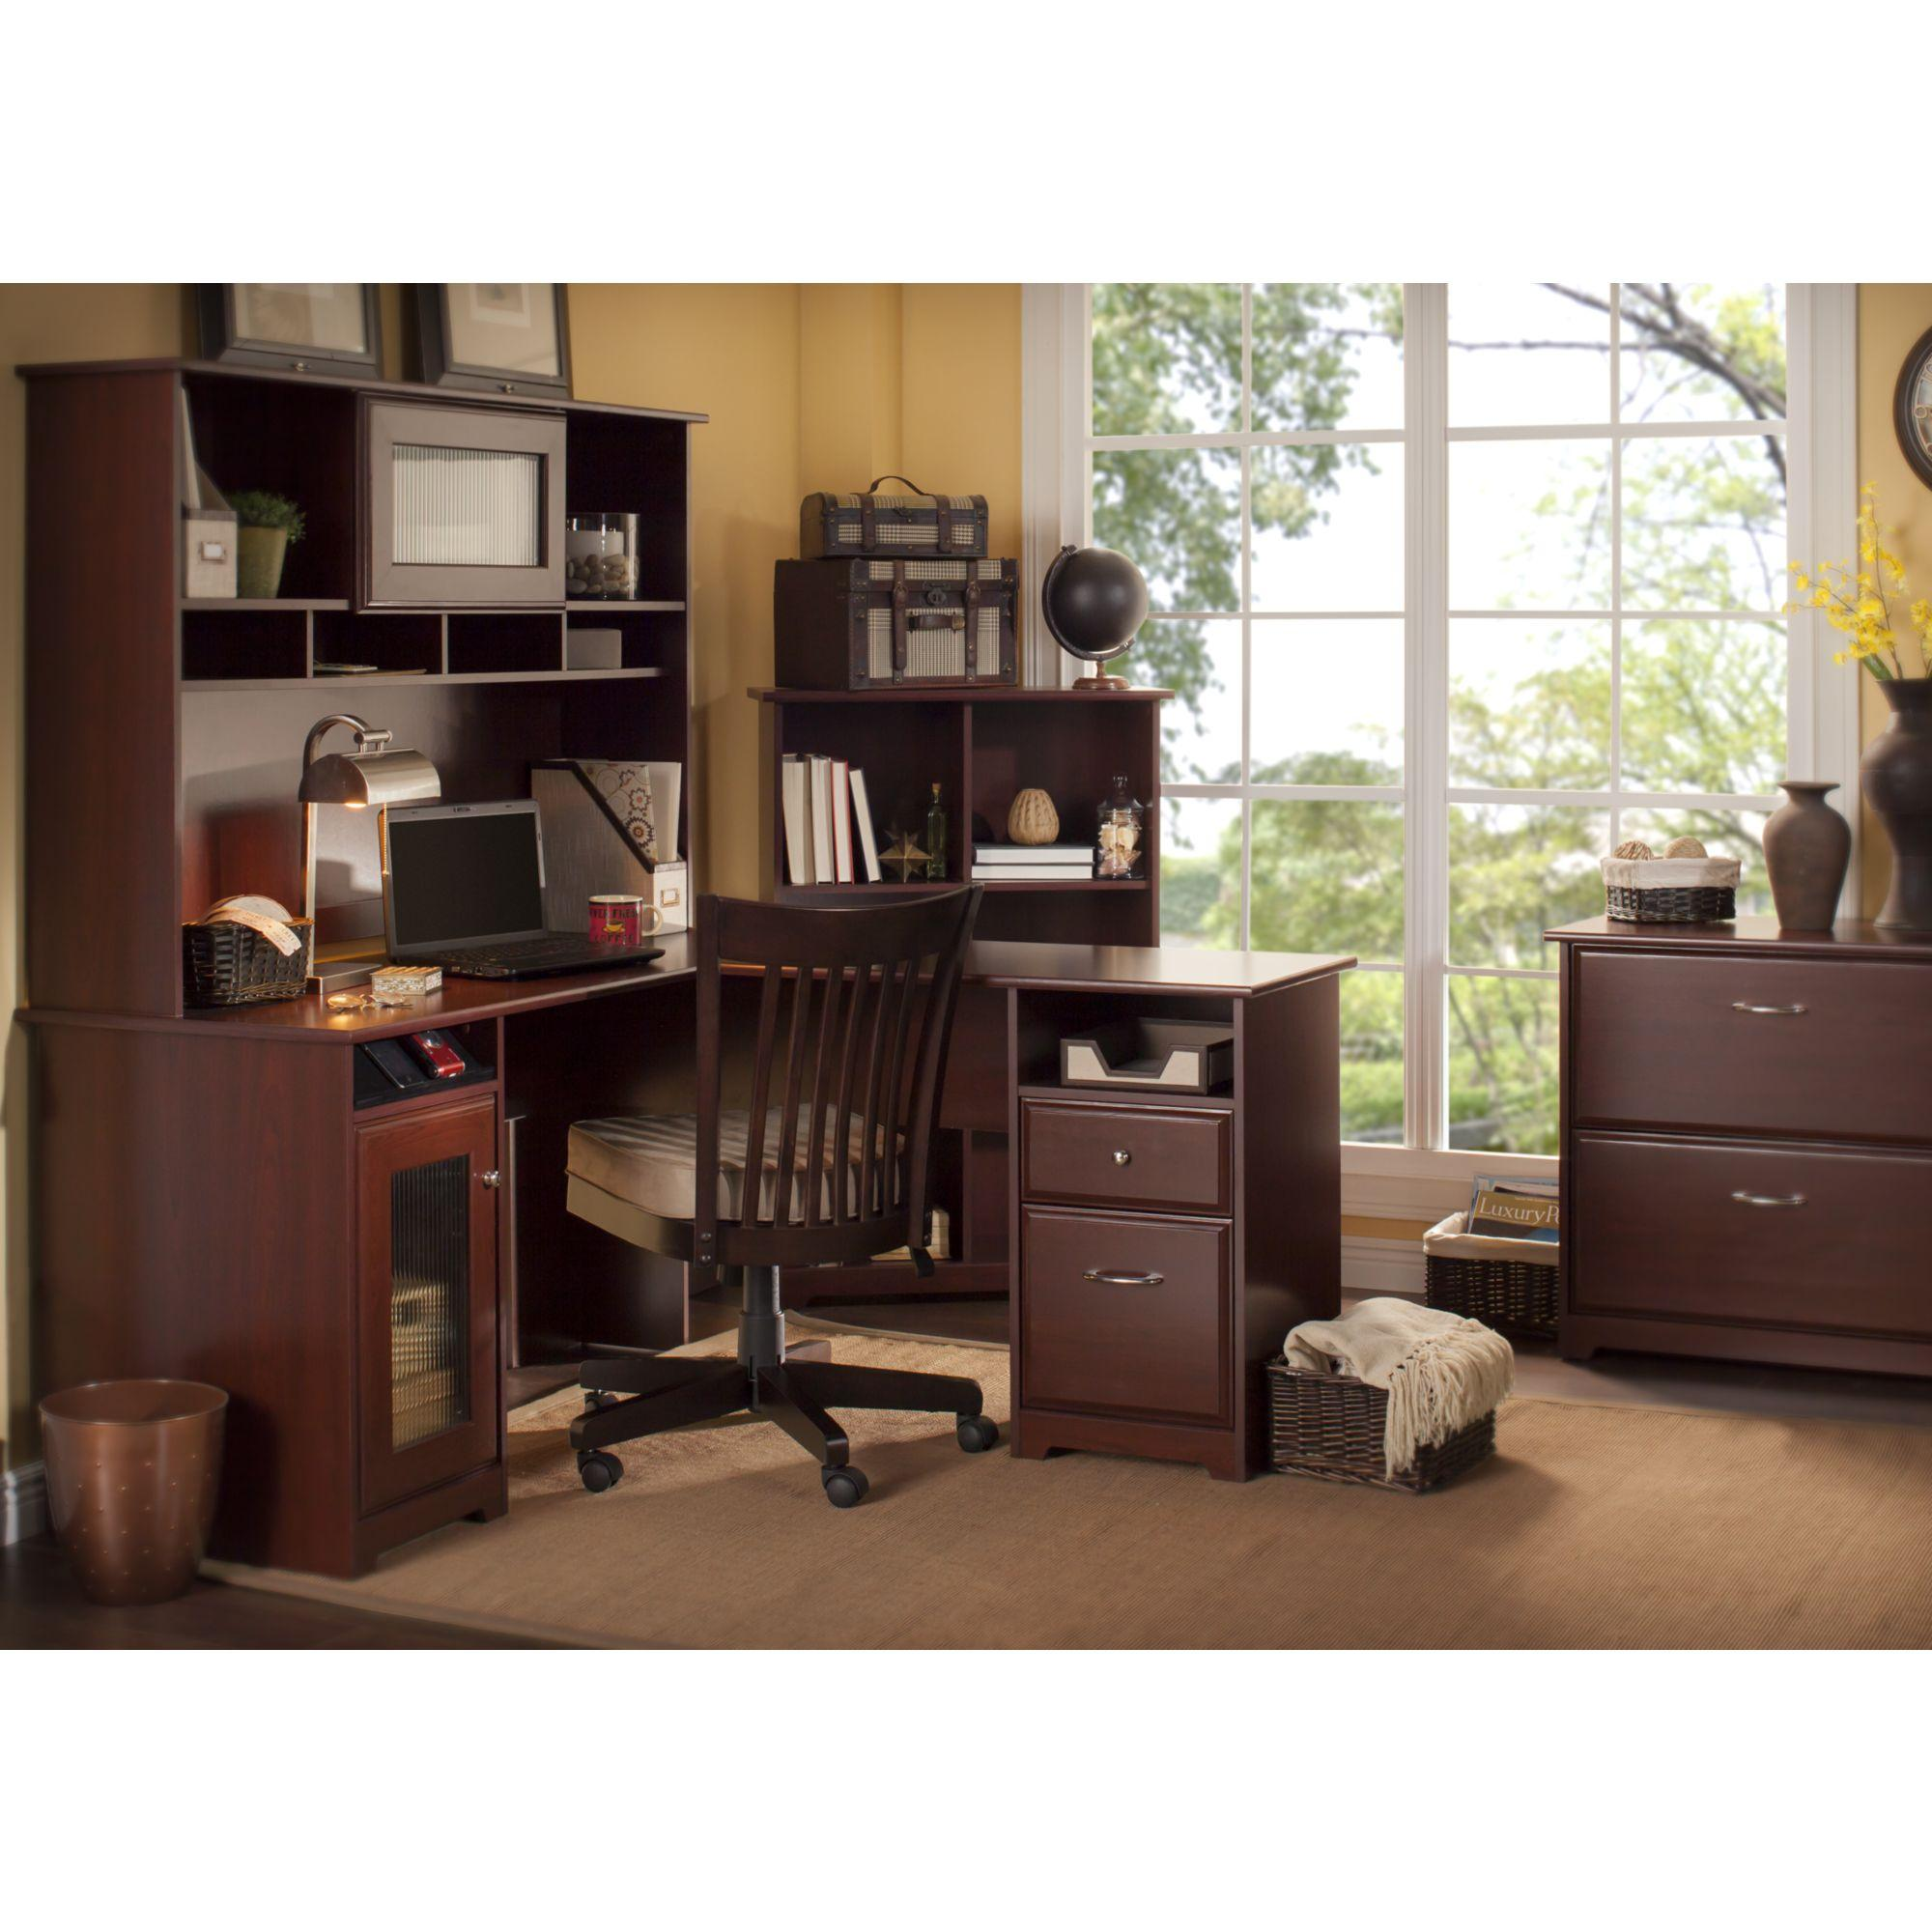 Amazon Com Cabot L Shaped Desk With Hutch Kitchen Amp Dining